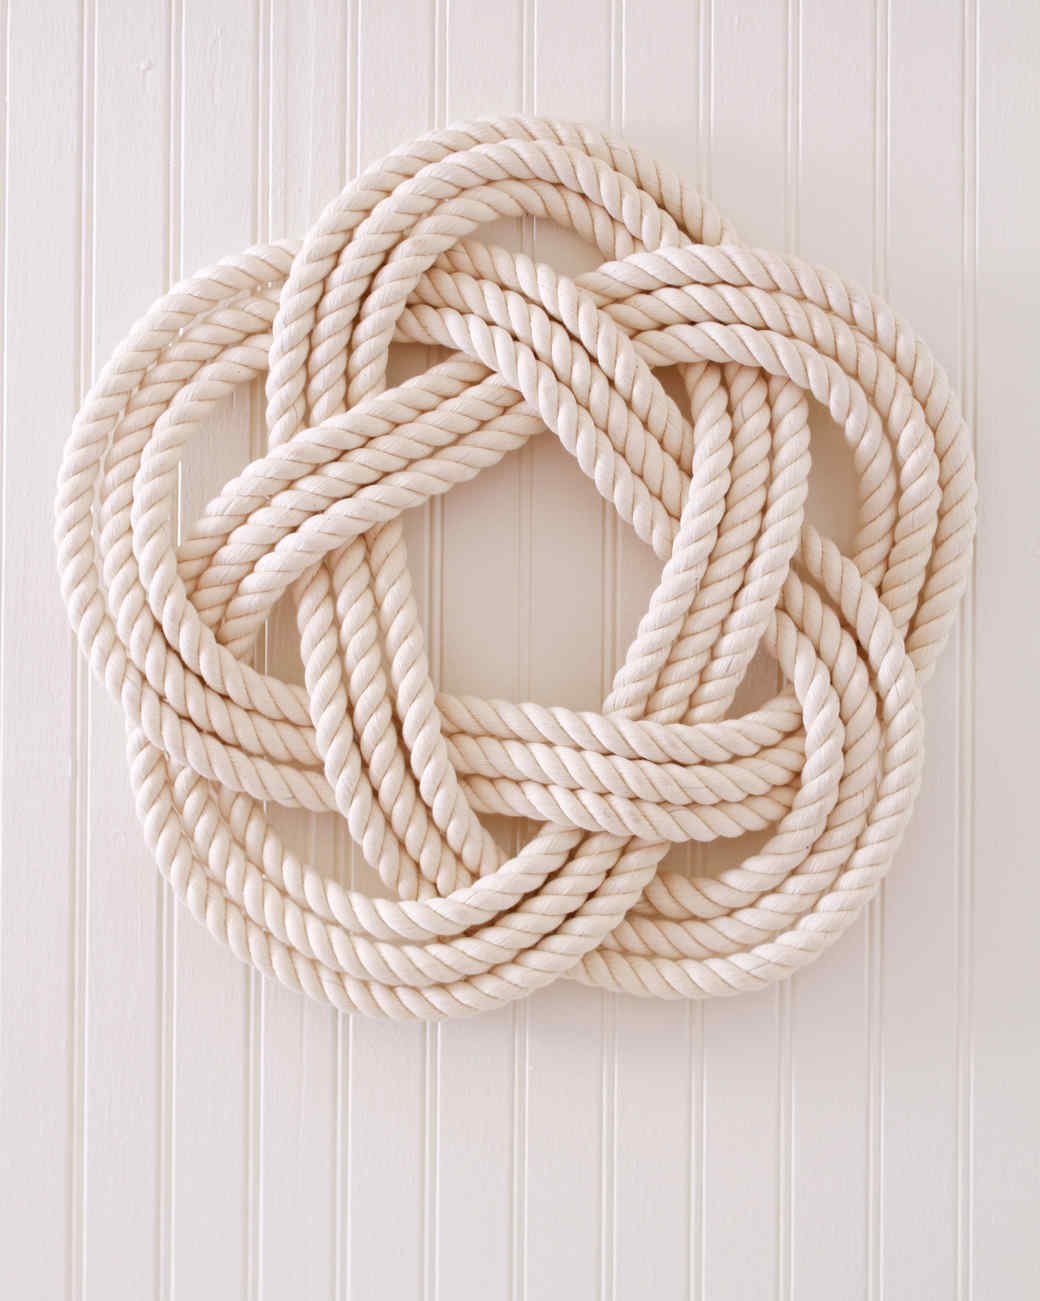 sailor's knot wreath